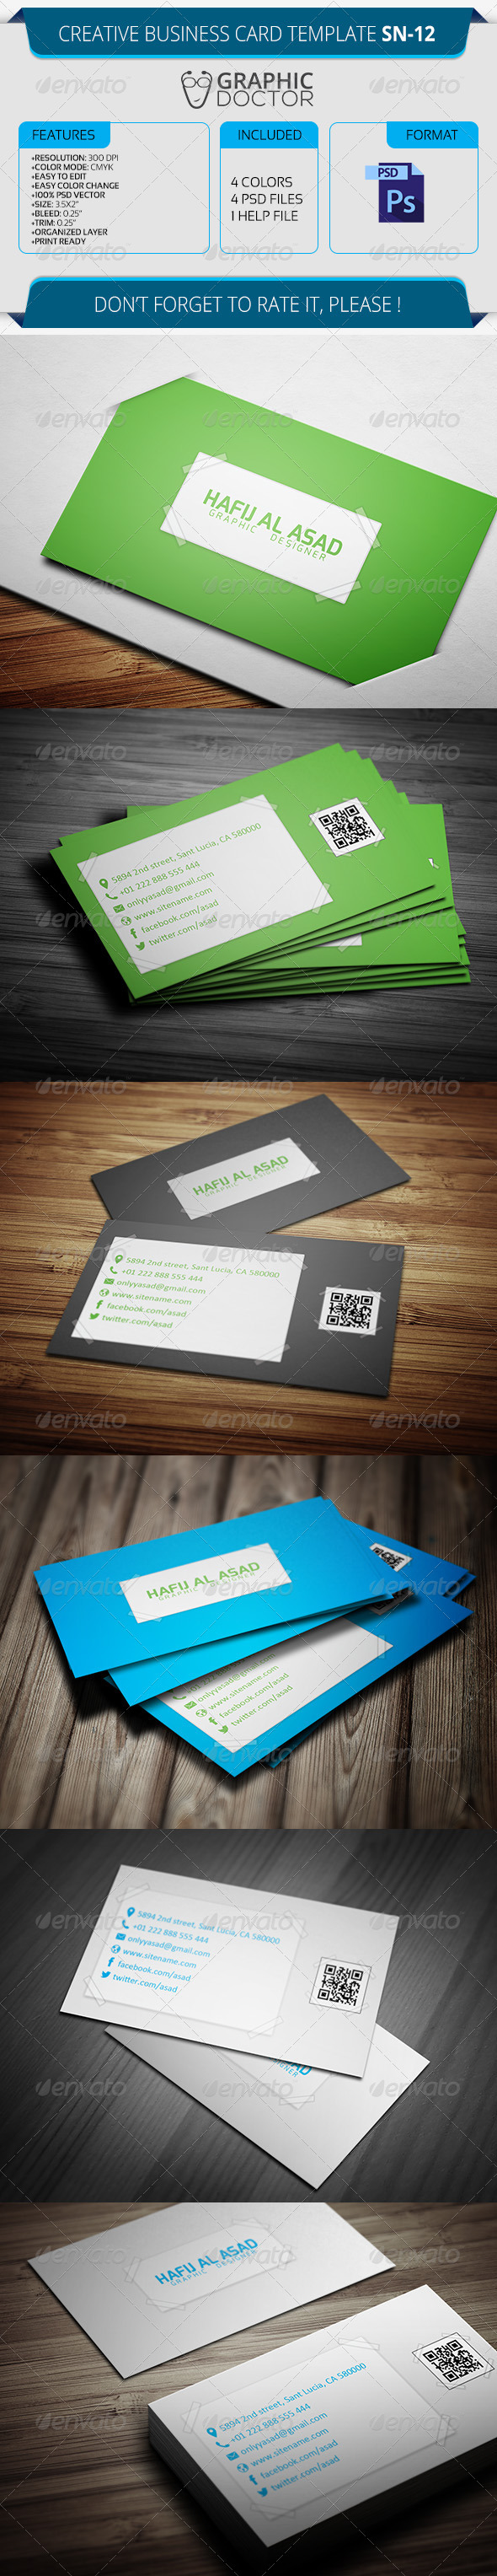 Creative Business Card Template SN-12 - Creative Business Cards